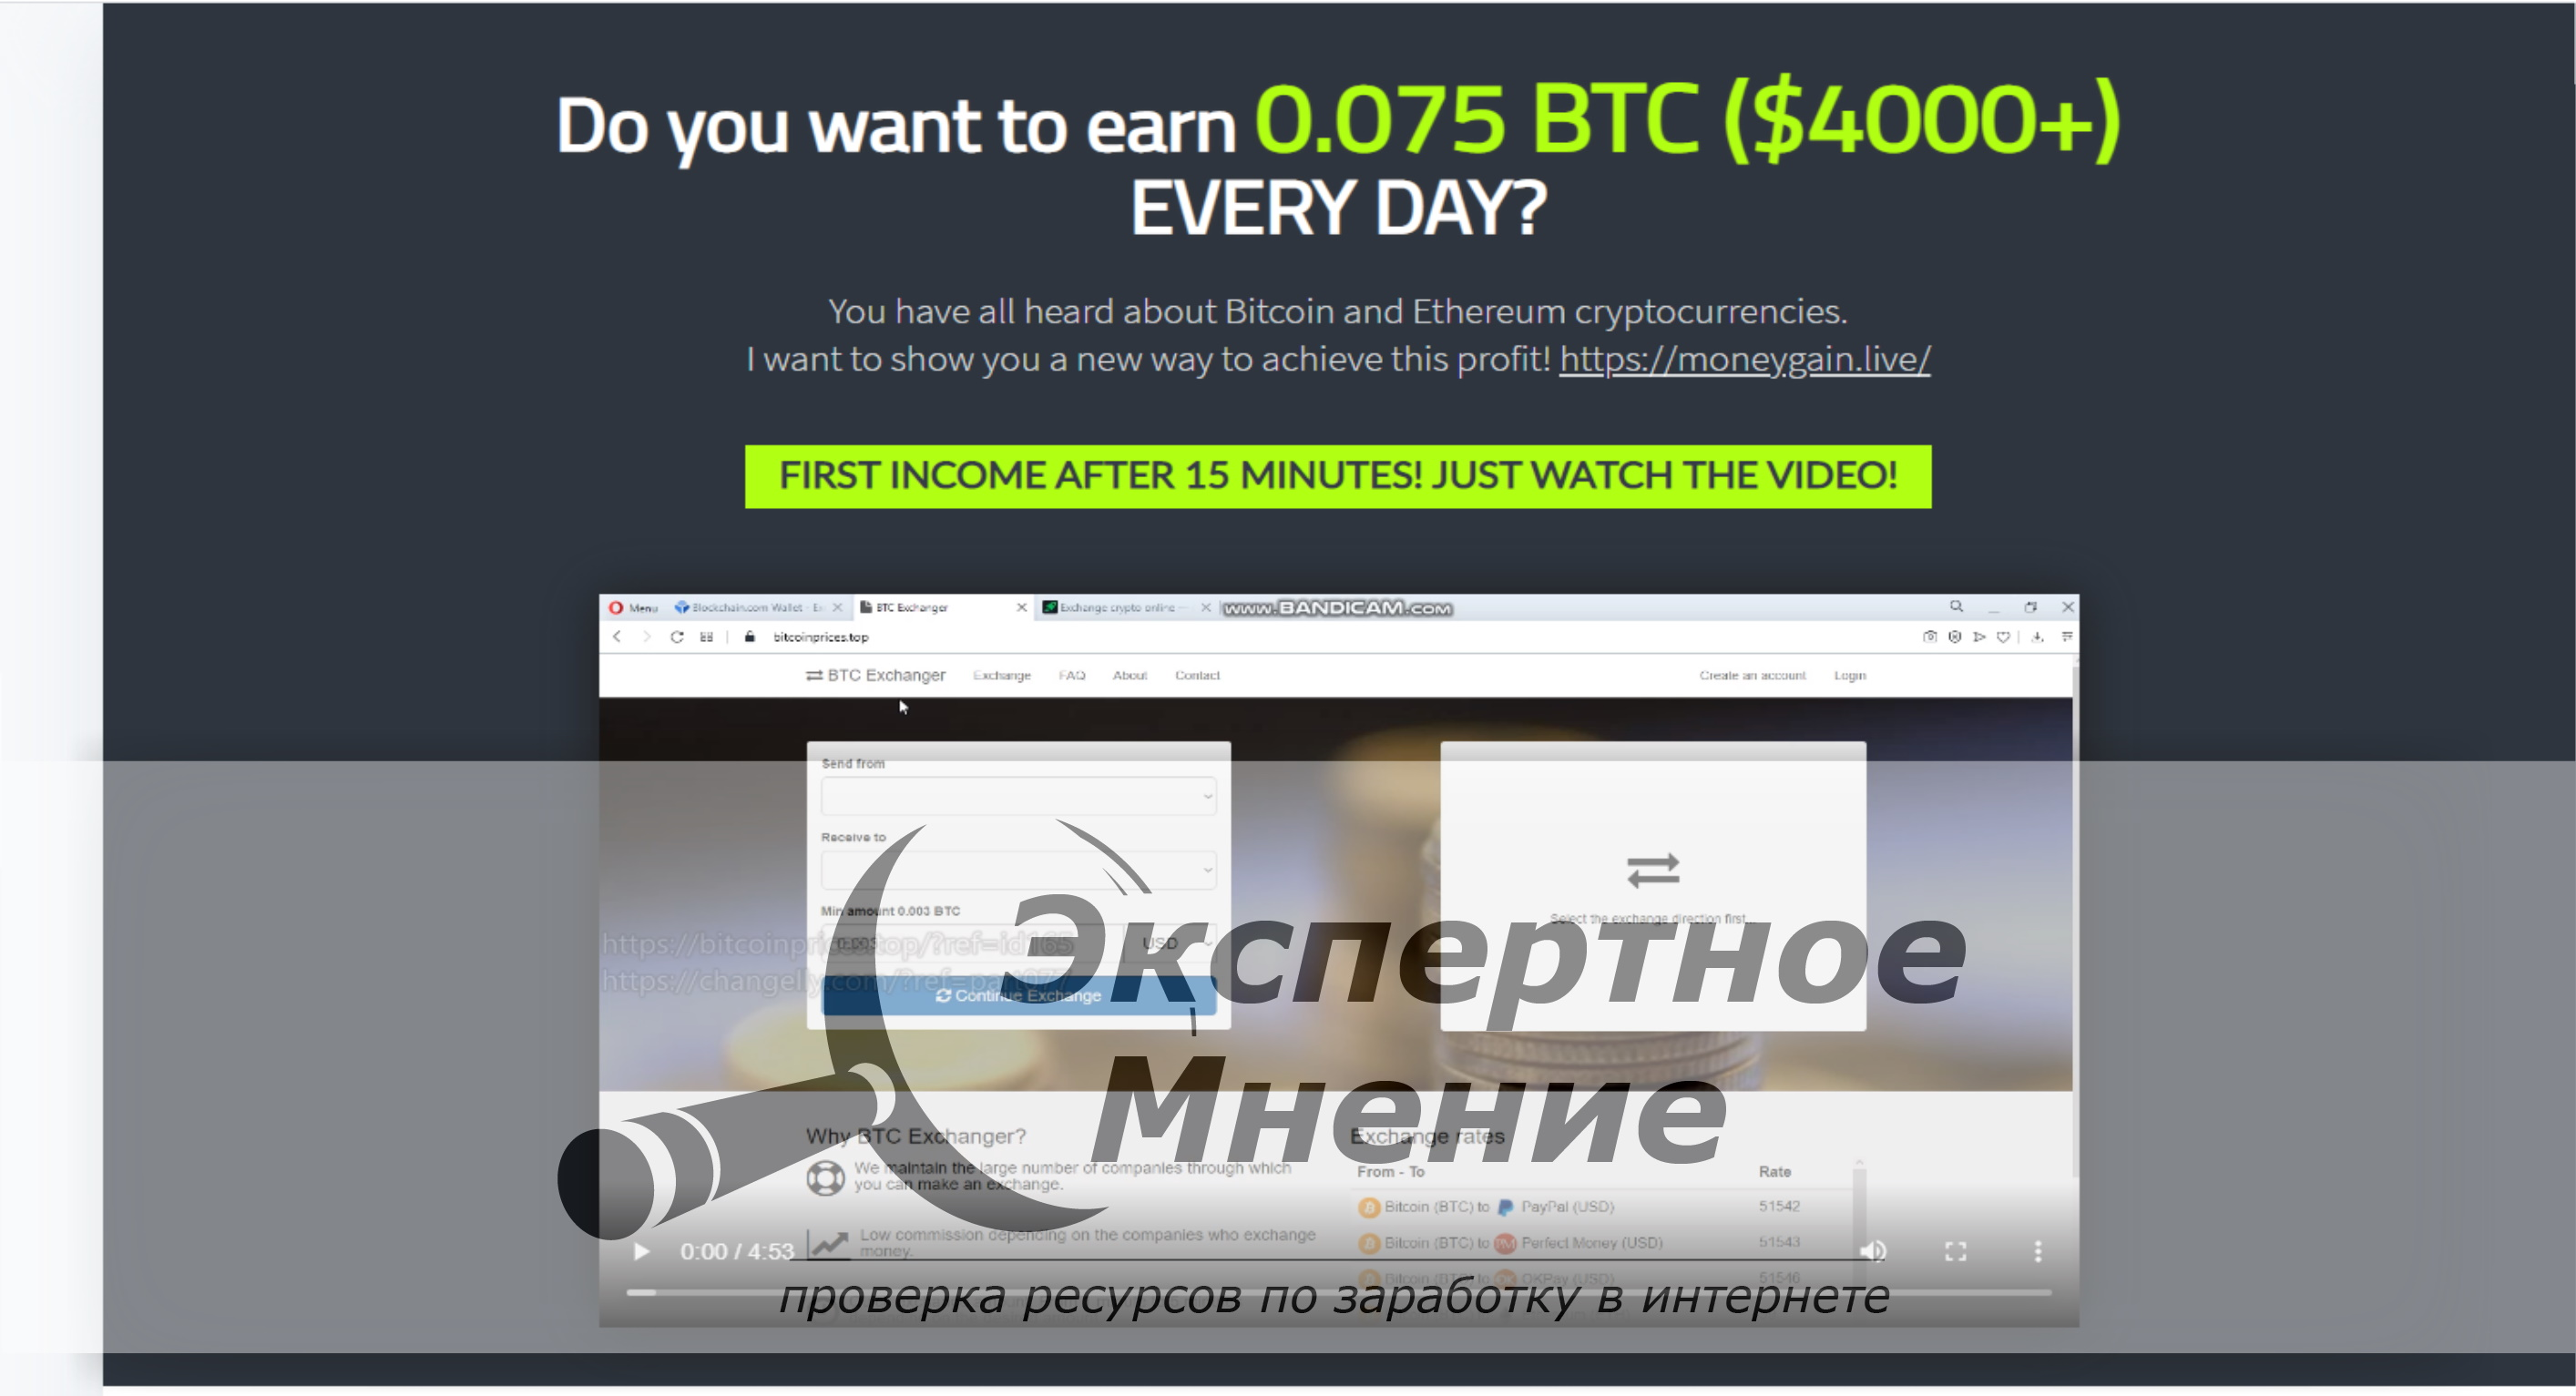 Do you want to earn 0.075 BTC ($4000+) EVERY DAY